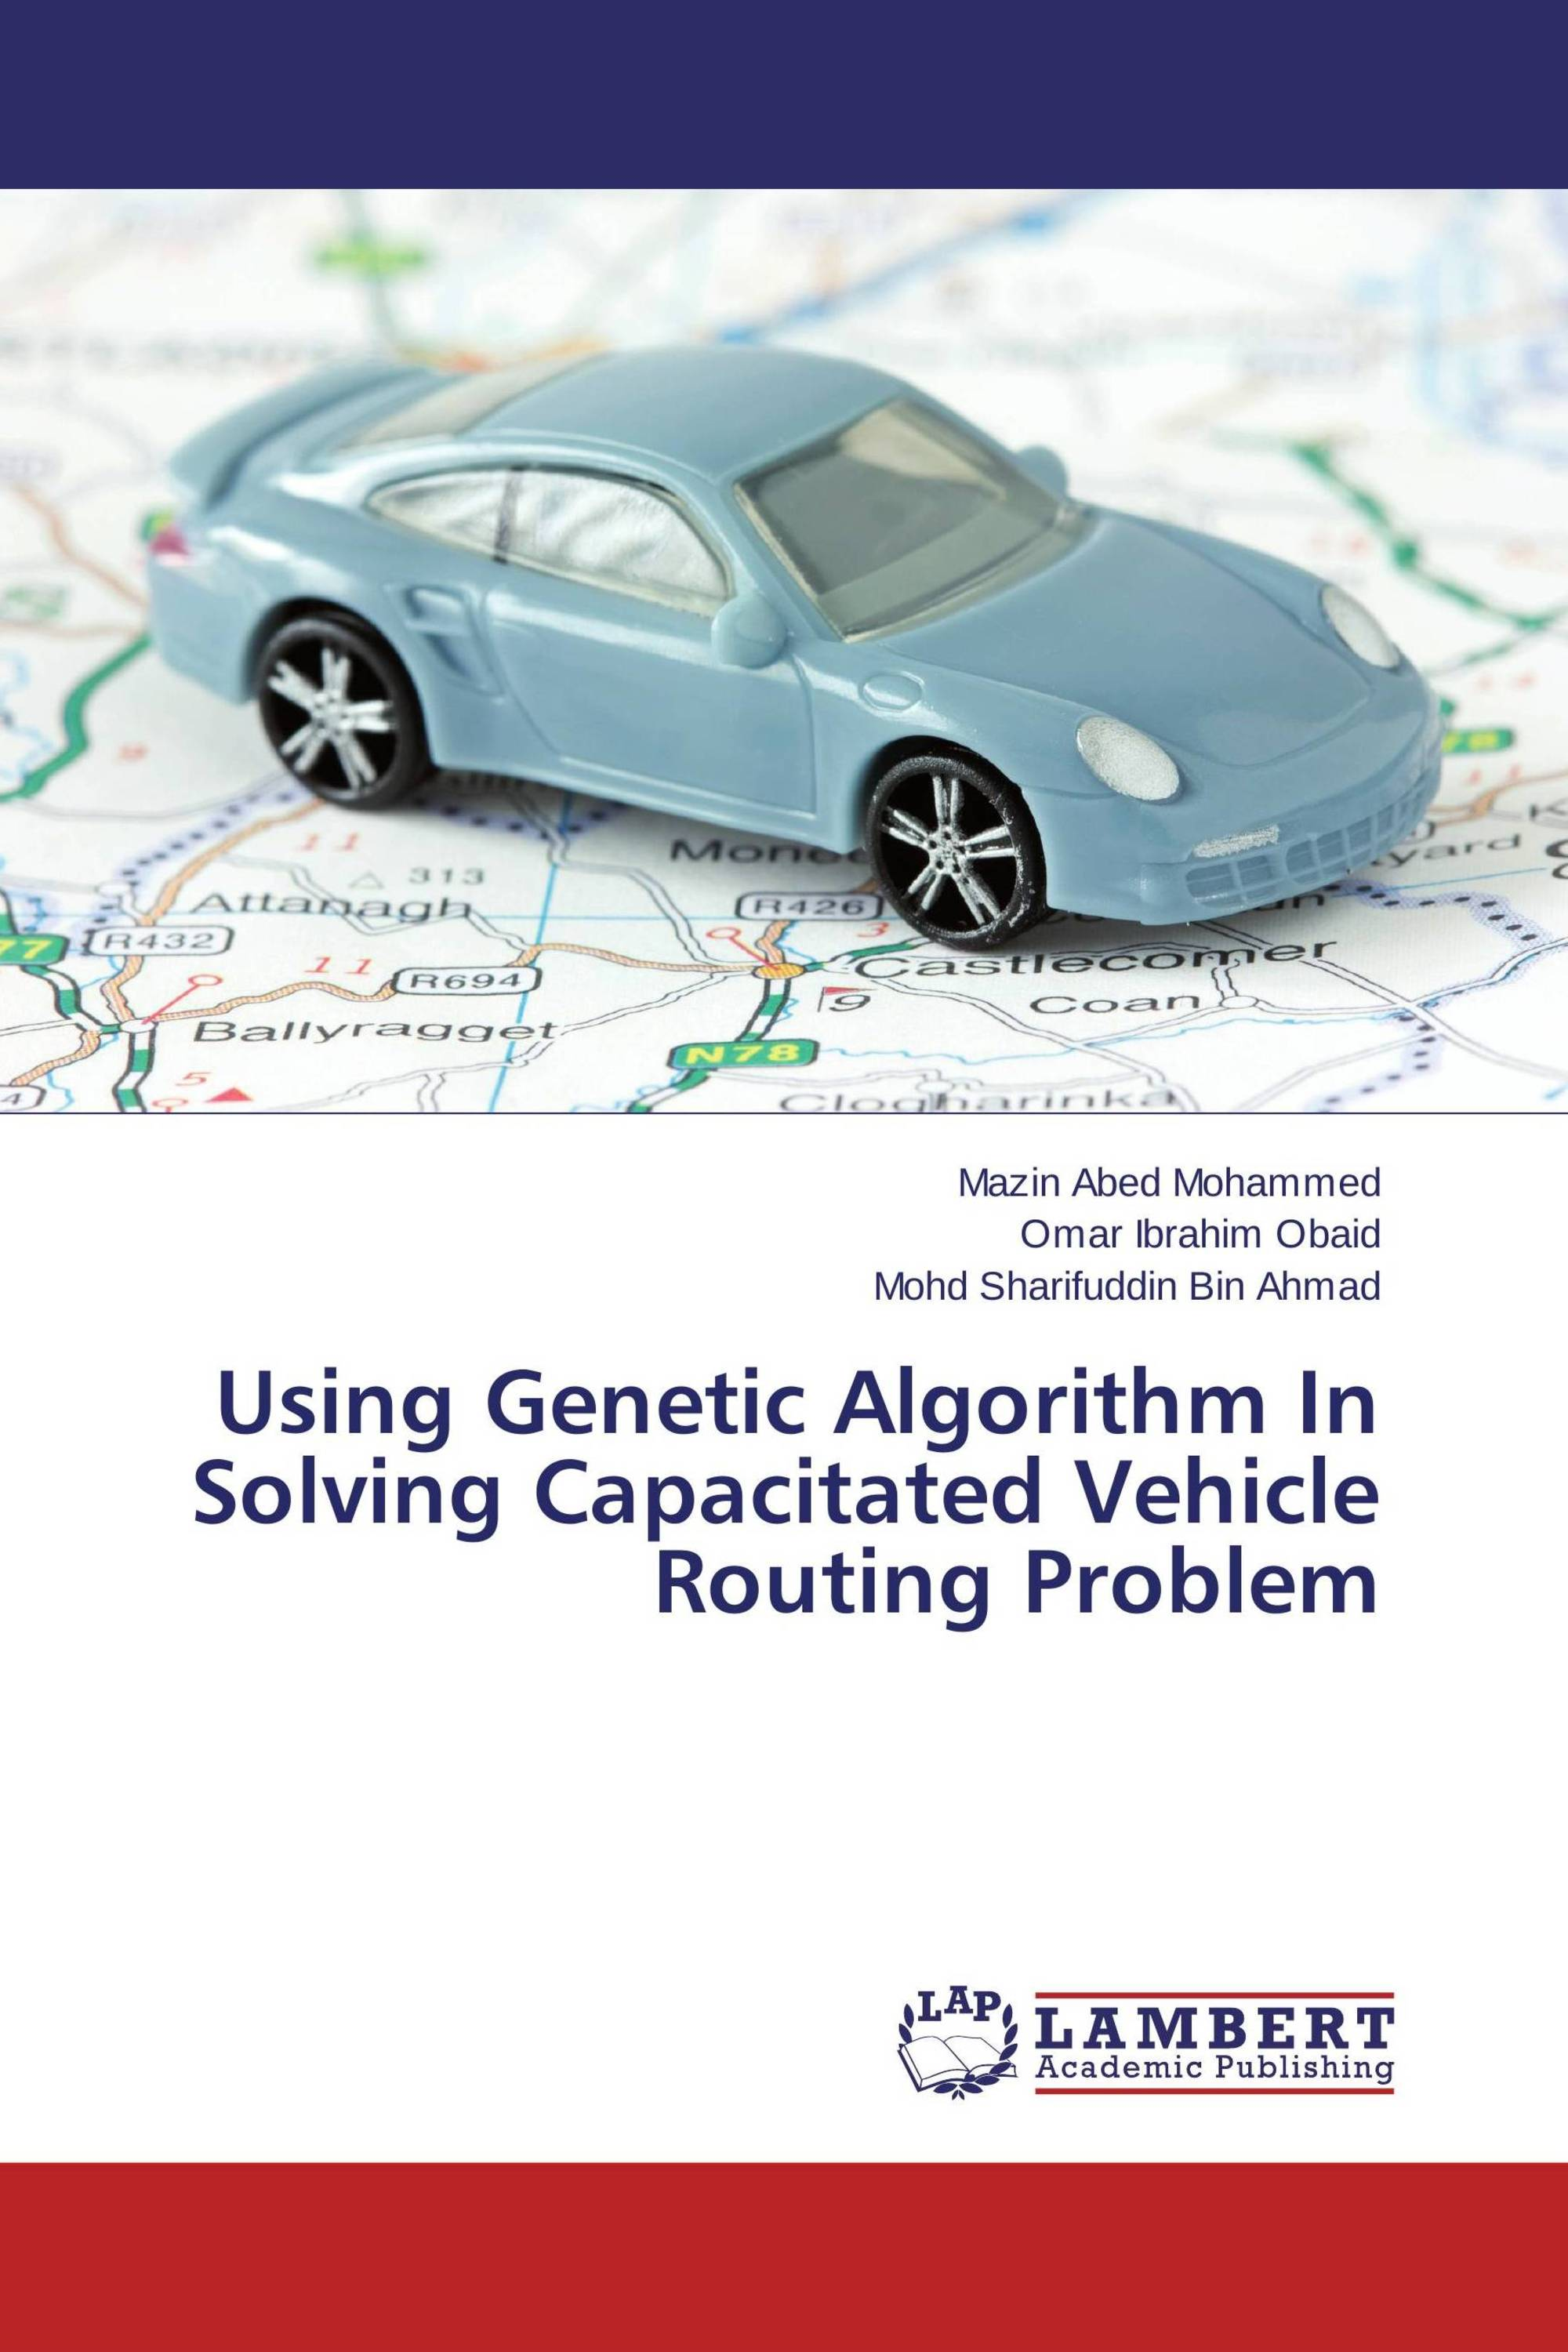 Thesis on genetic algorithm